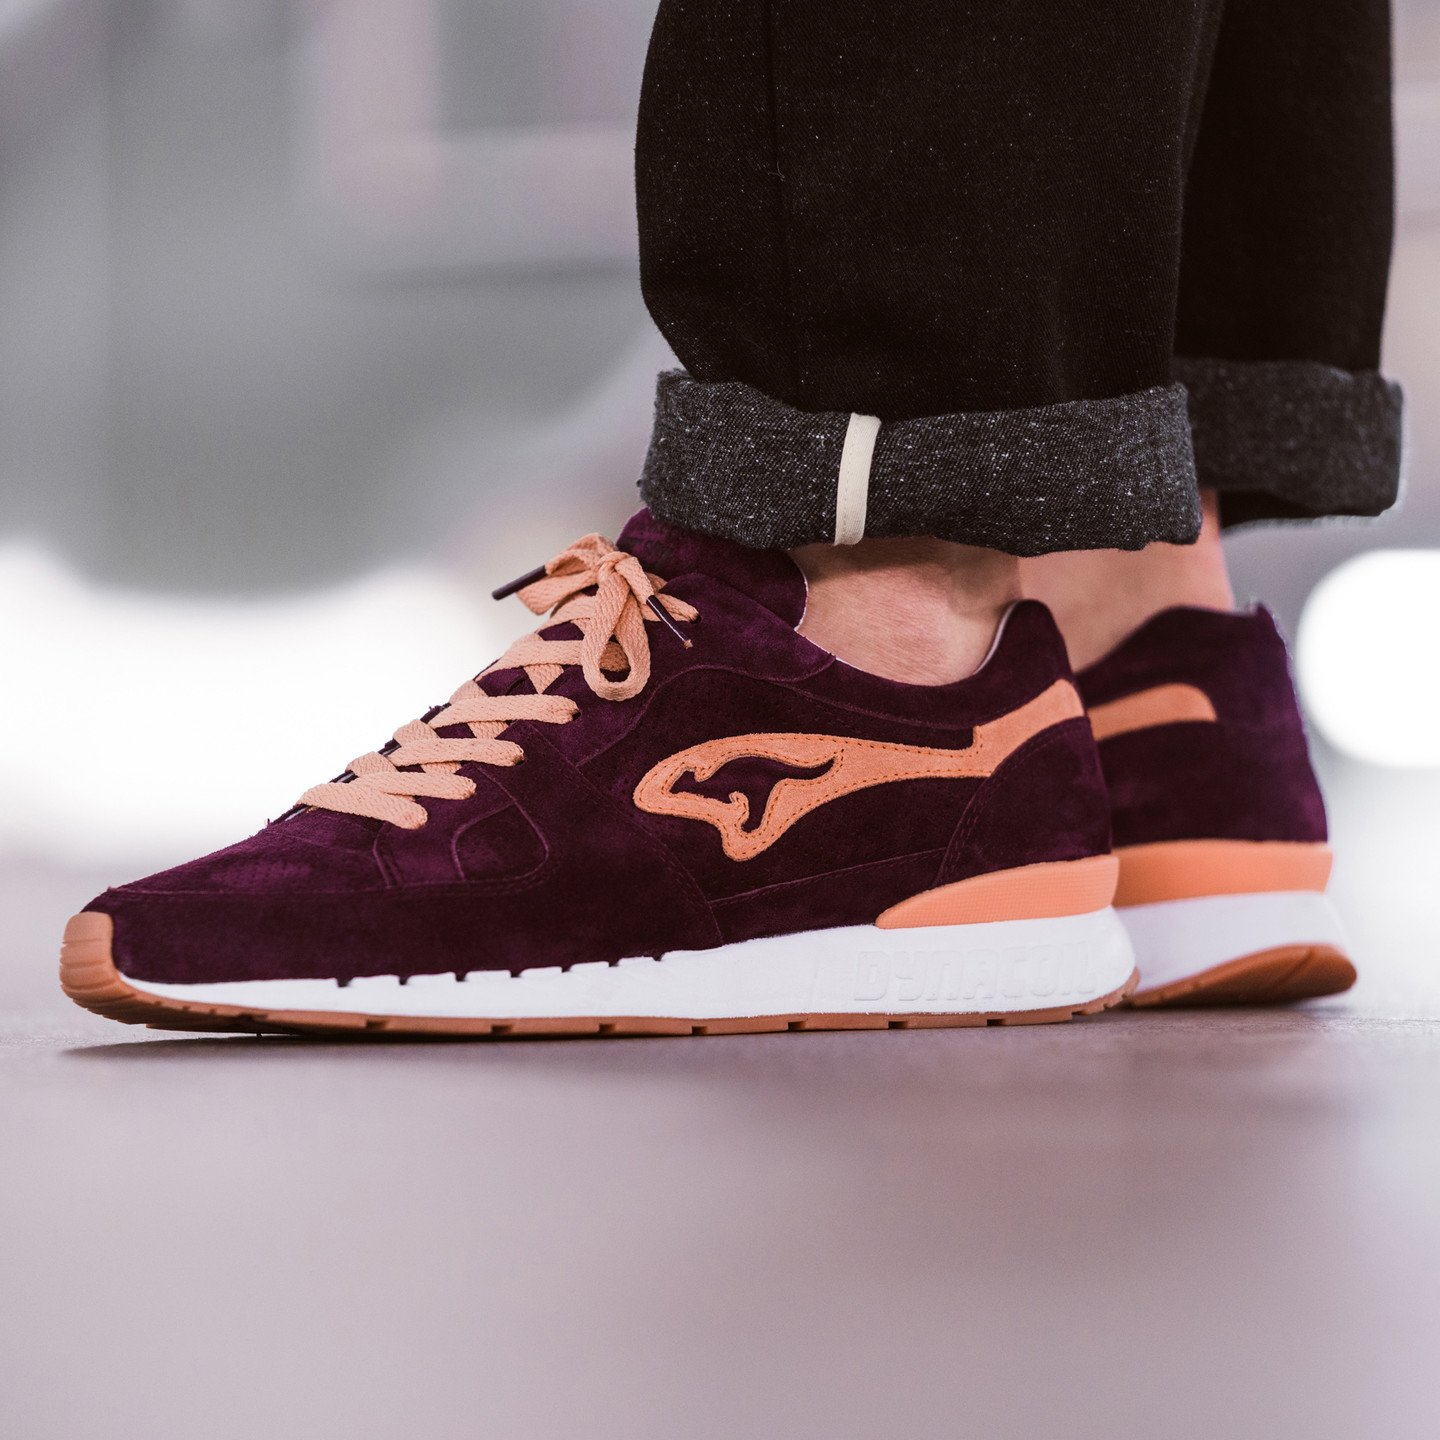 KangaROOS Coil R-1 'Shiraz' - Made in Germany Burgundy / Peach 47225-6111